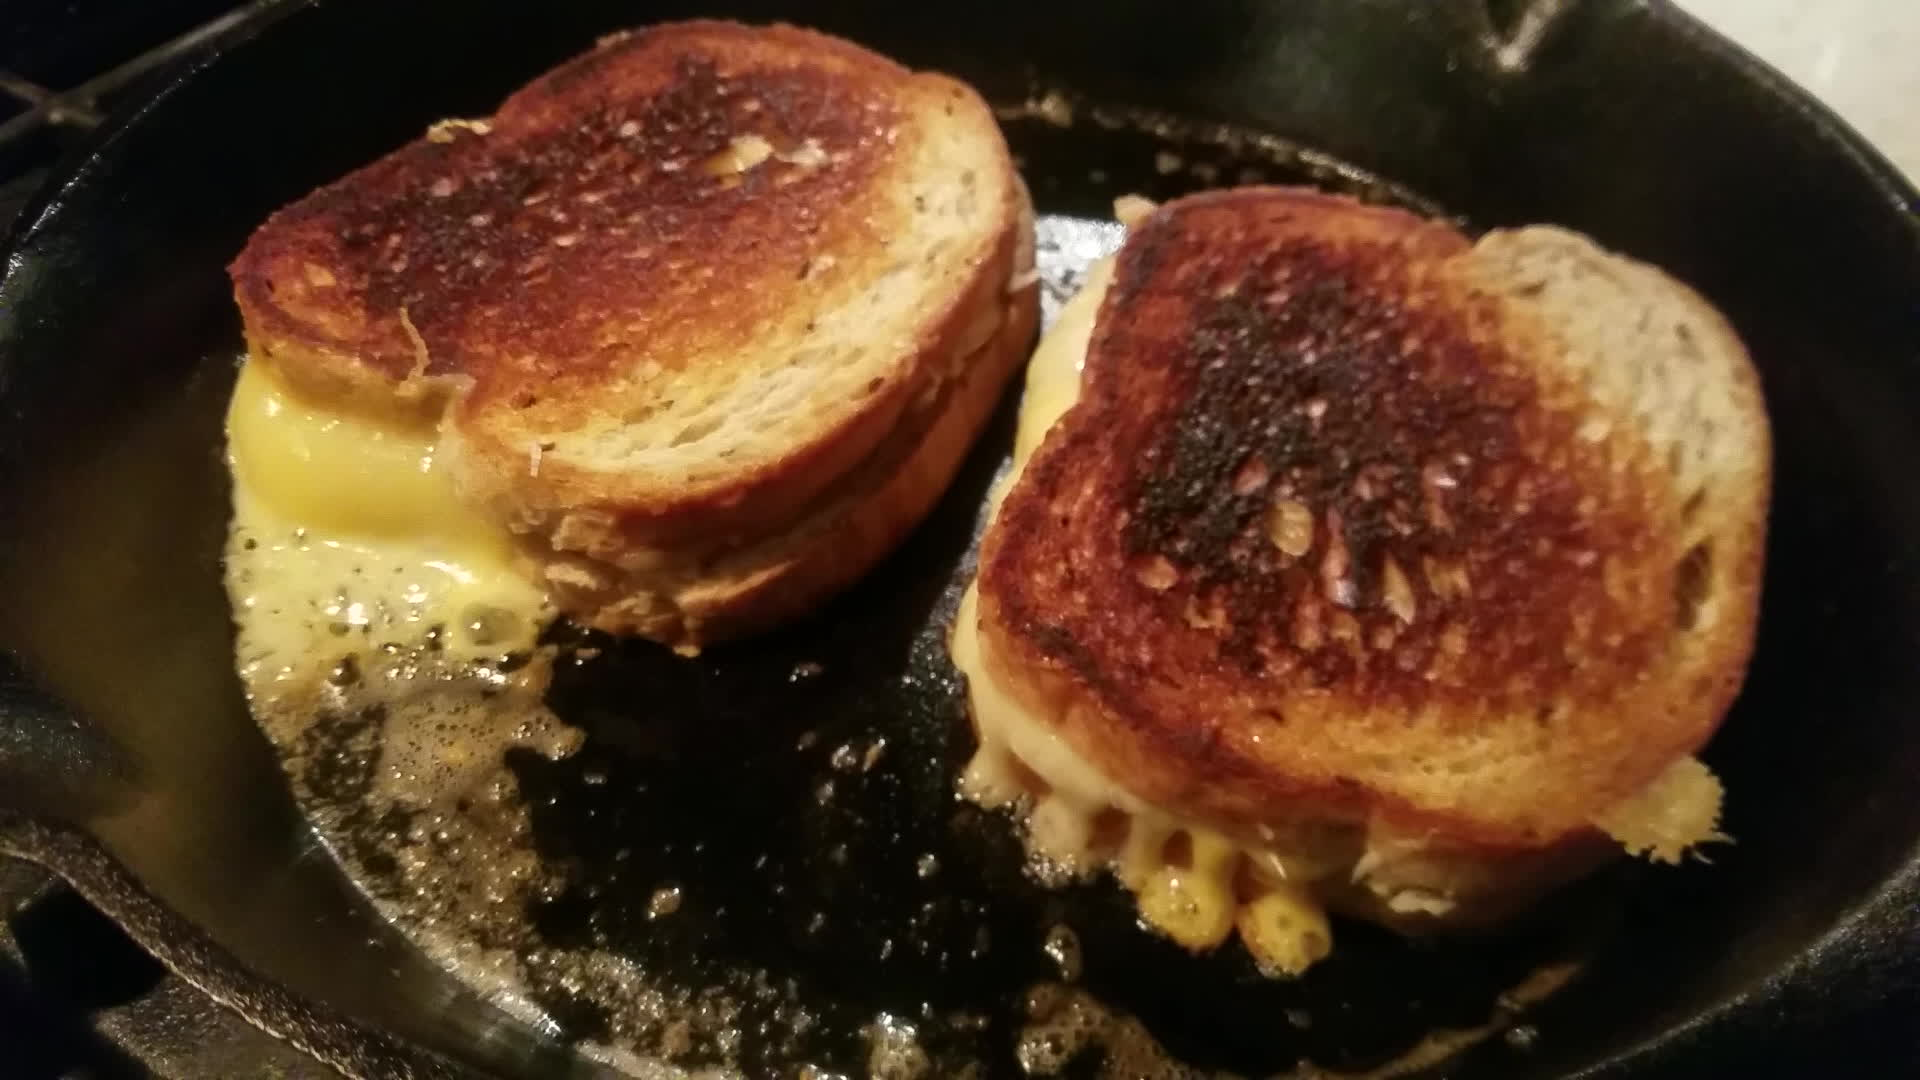 castiron, grilledcheese, seriously sharp cheddar, pecorino romano, & american on rye GIFs